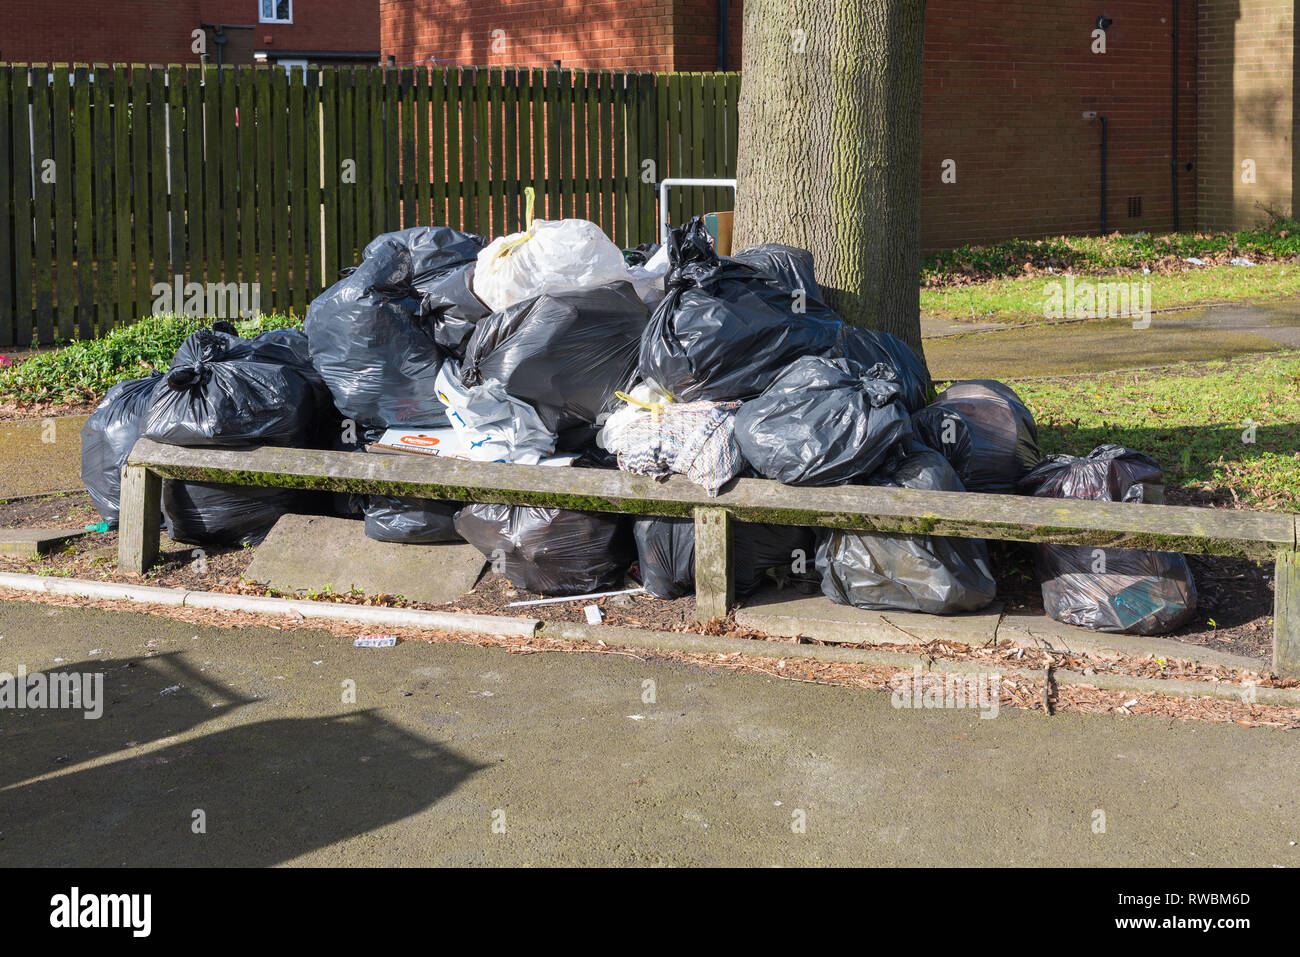 Black rubbish bags piled up on the roadside in Ladywood, Birmingham as a result of industrial action by refuse collectors - Stock Image